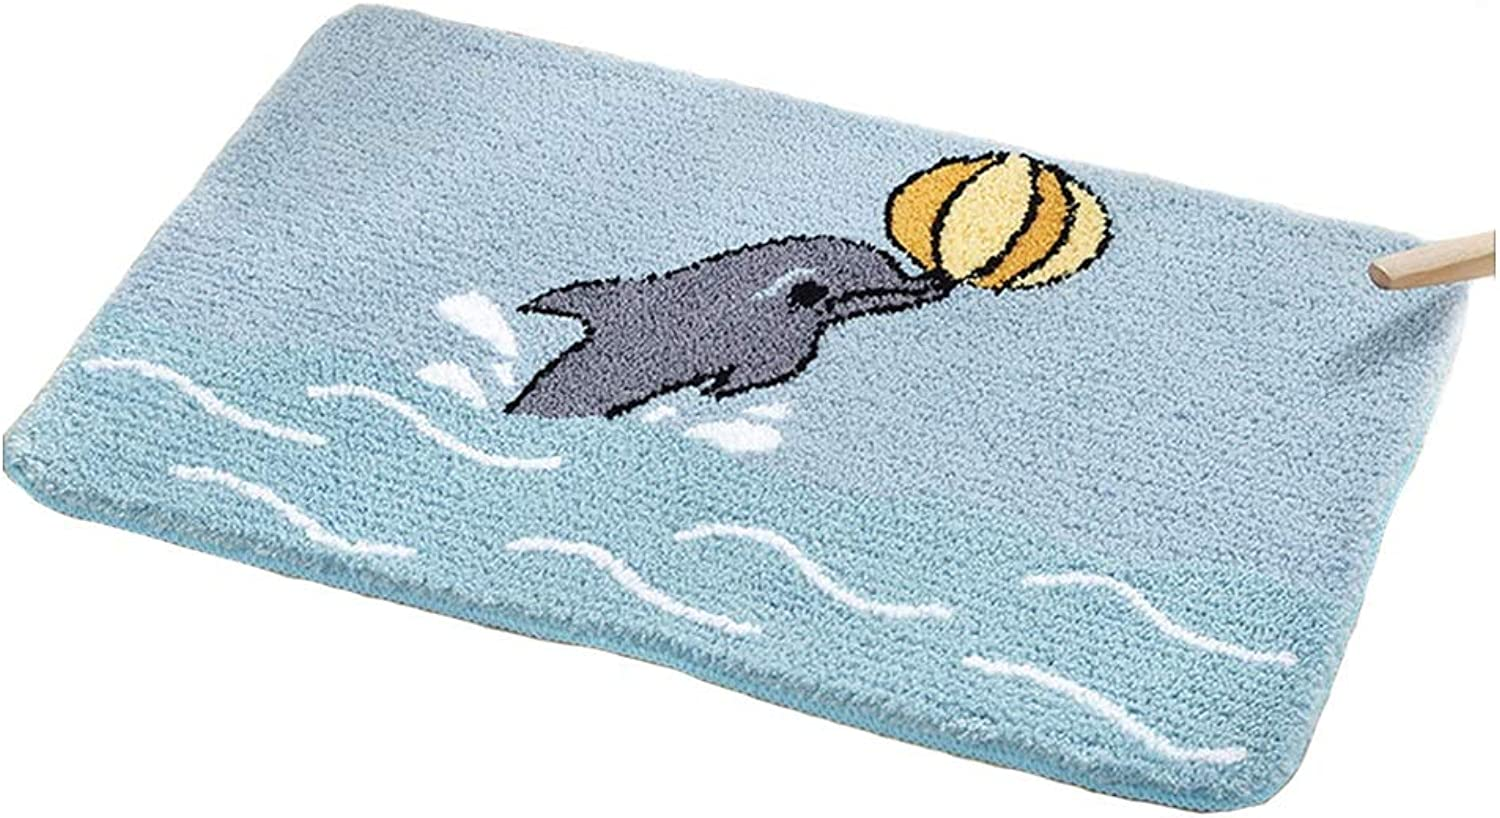 XF Doormats Door Mat Creative Cartoon Entrance Hall Kitchen Entrance Carpet Mat Bedroom Bathroom Bathroom Door Absorbent Floor Mat -55x80 cm, 60x90 cm Hallway Furniture (Size   50X80cm)